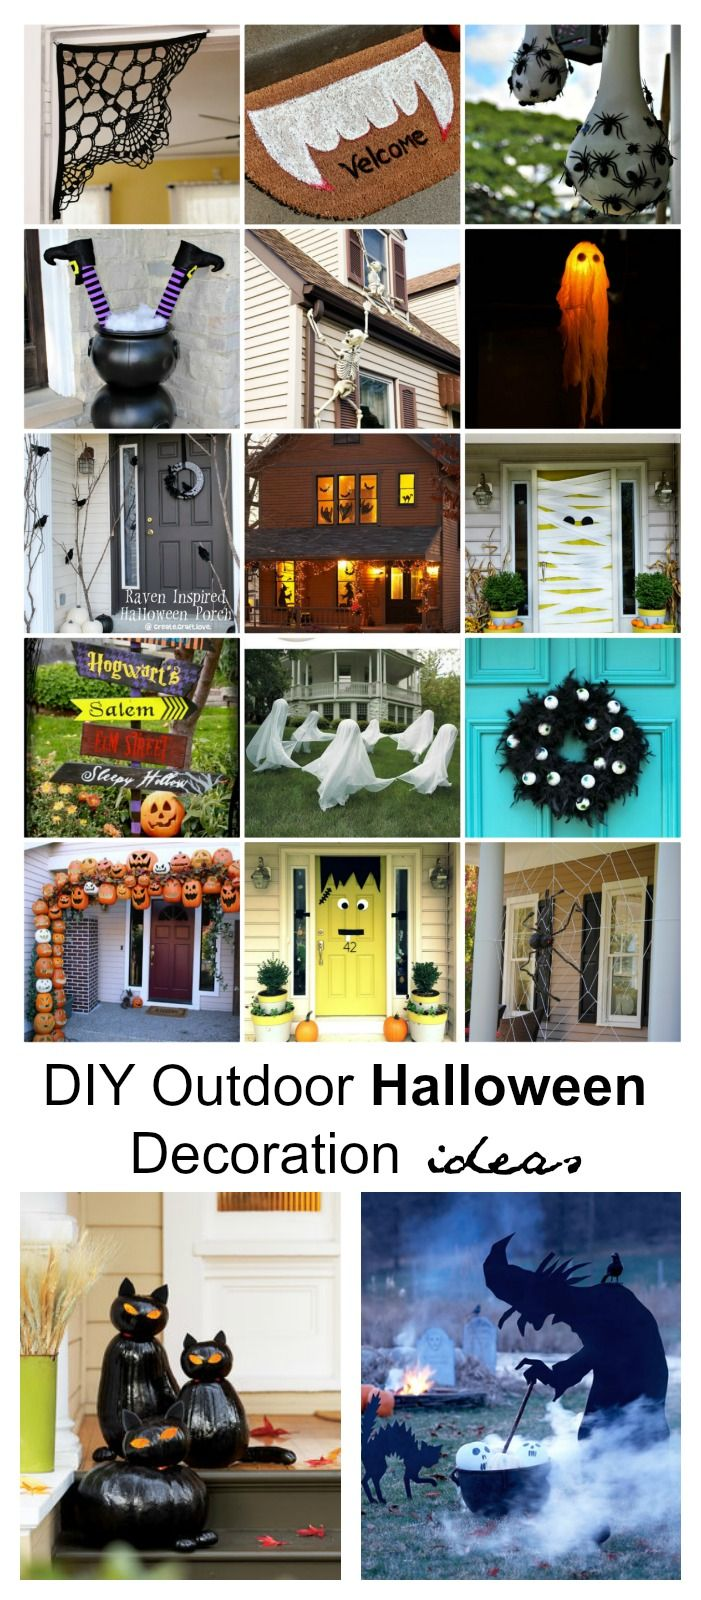 DIY Outdoor Halloween Decorations Diy outdoor halloween - halloween house decoration